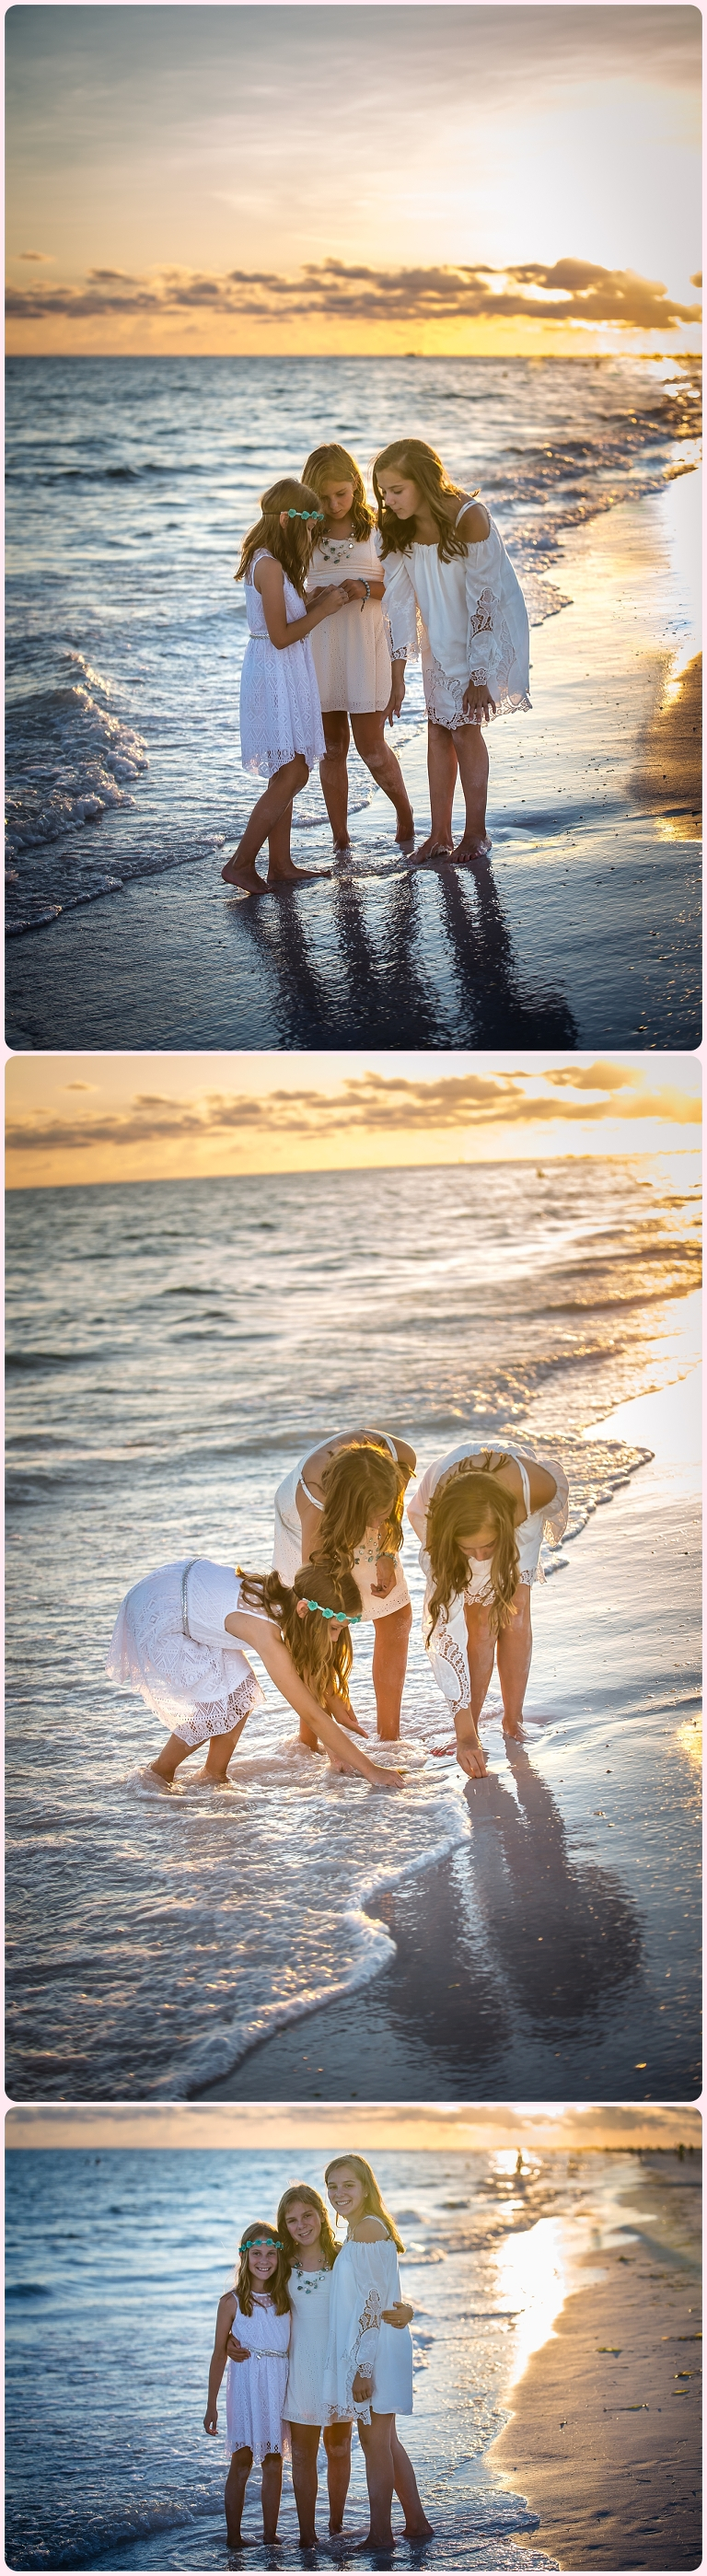 Siesta Key Sunset beach session by Sarasota portrait photographer www.ristainophotography.com